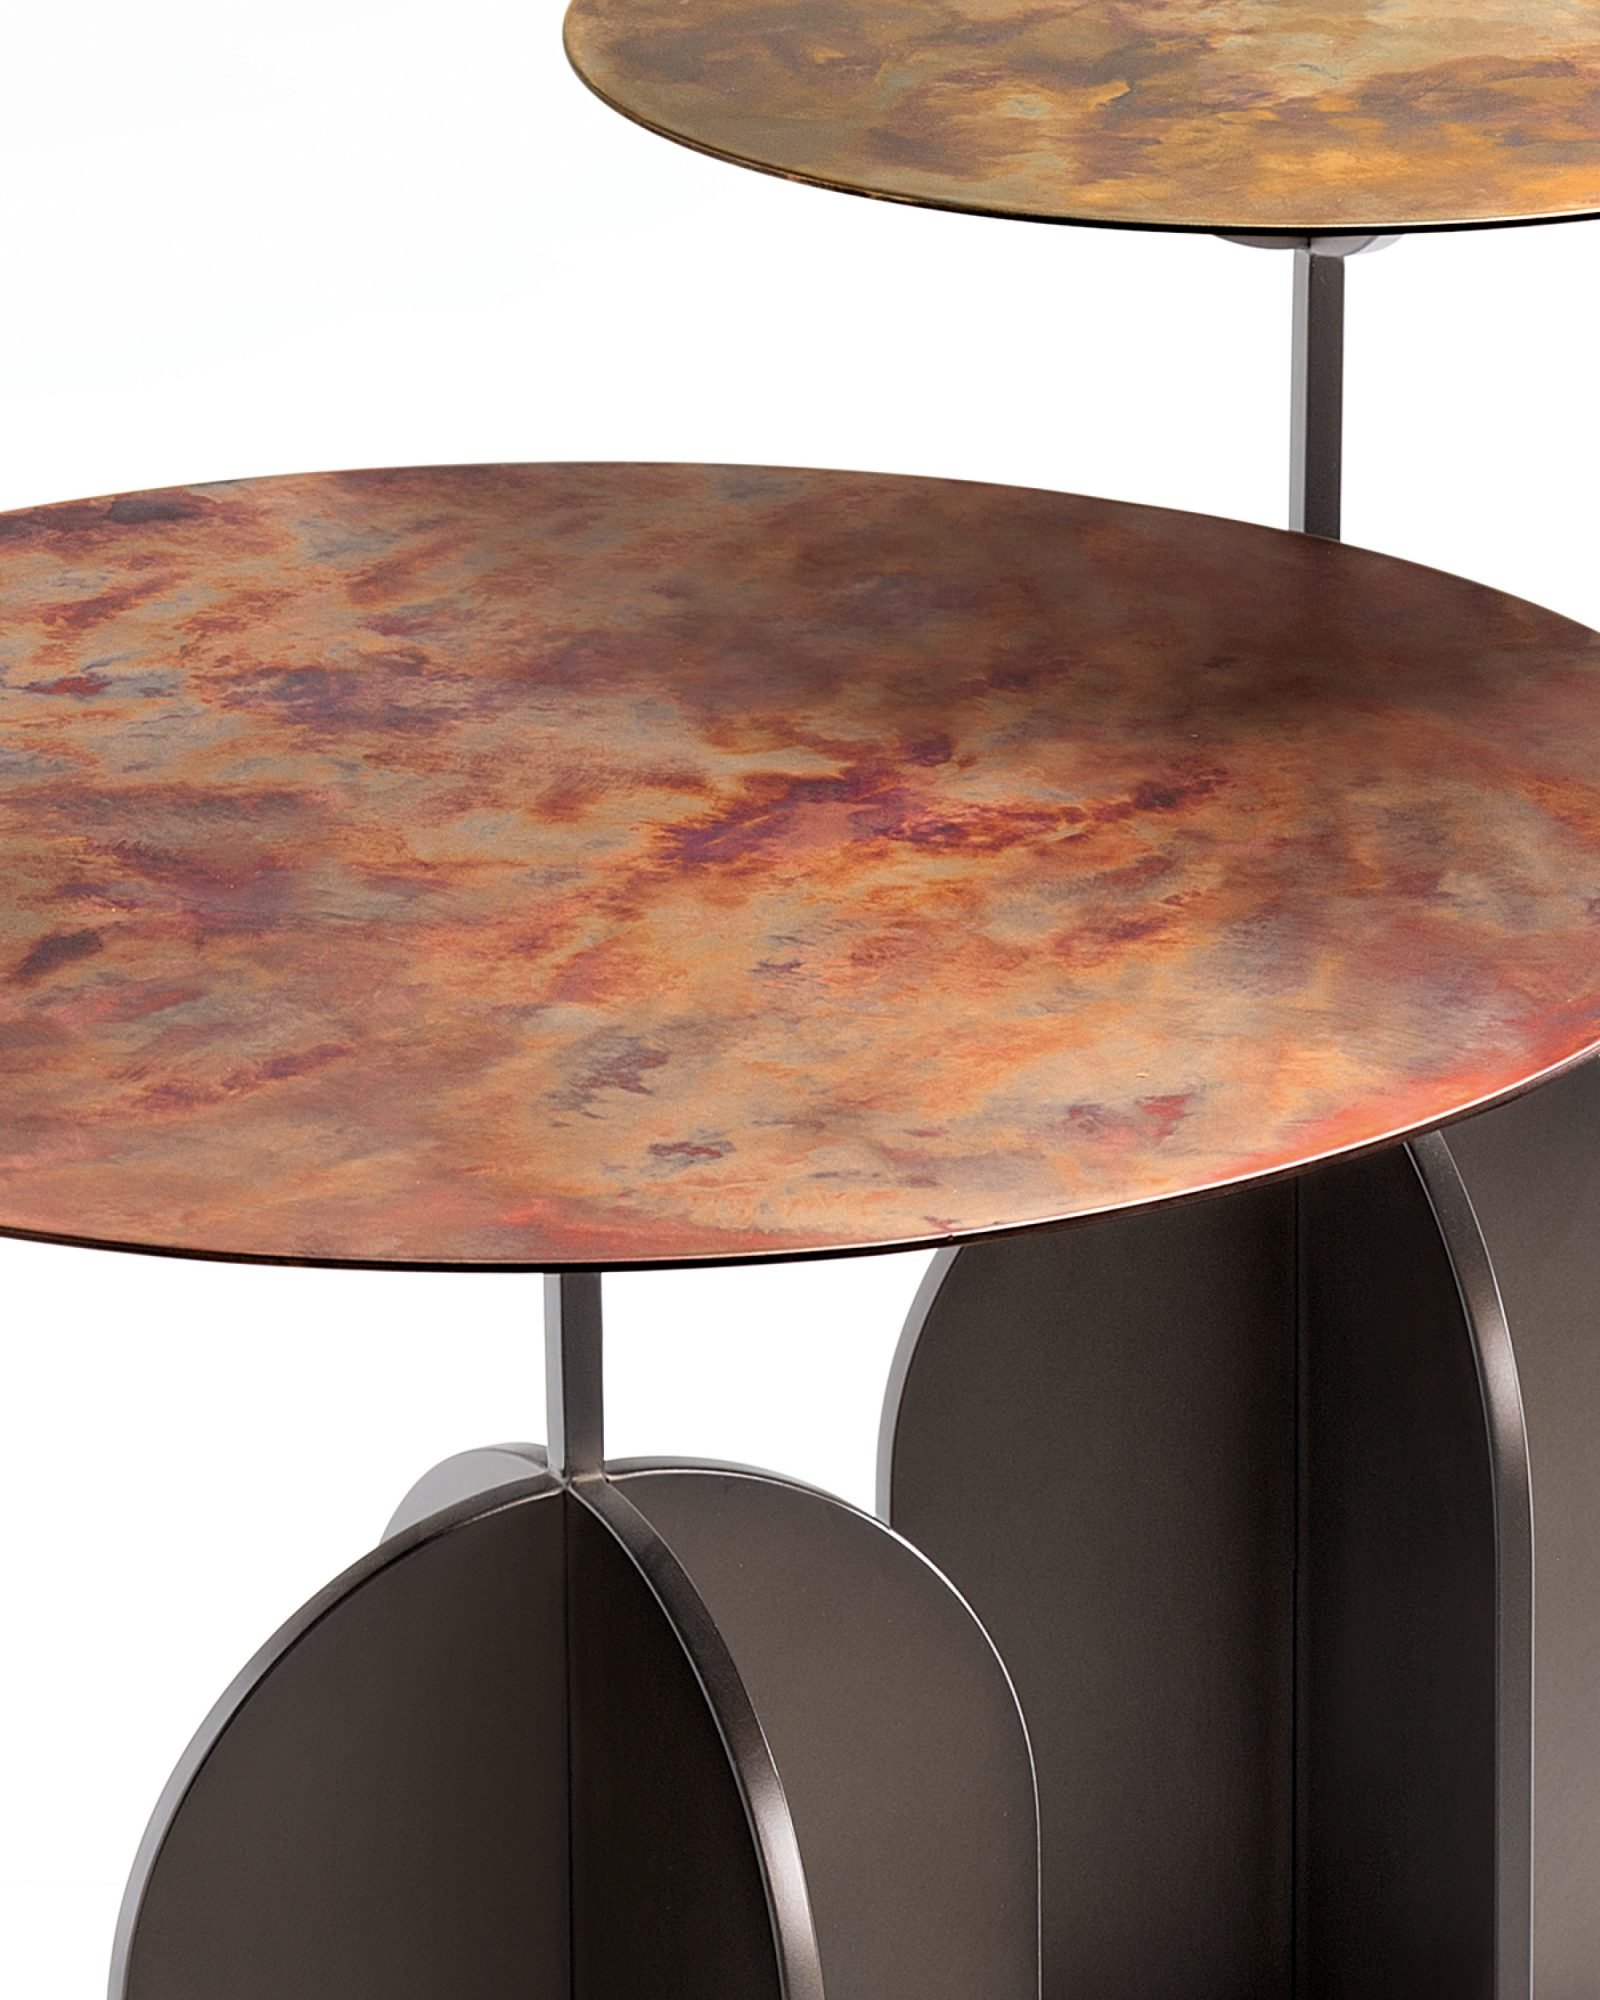 Nicola Table end from De Castelli, designed by IV Design